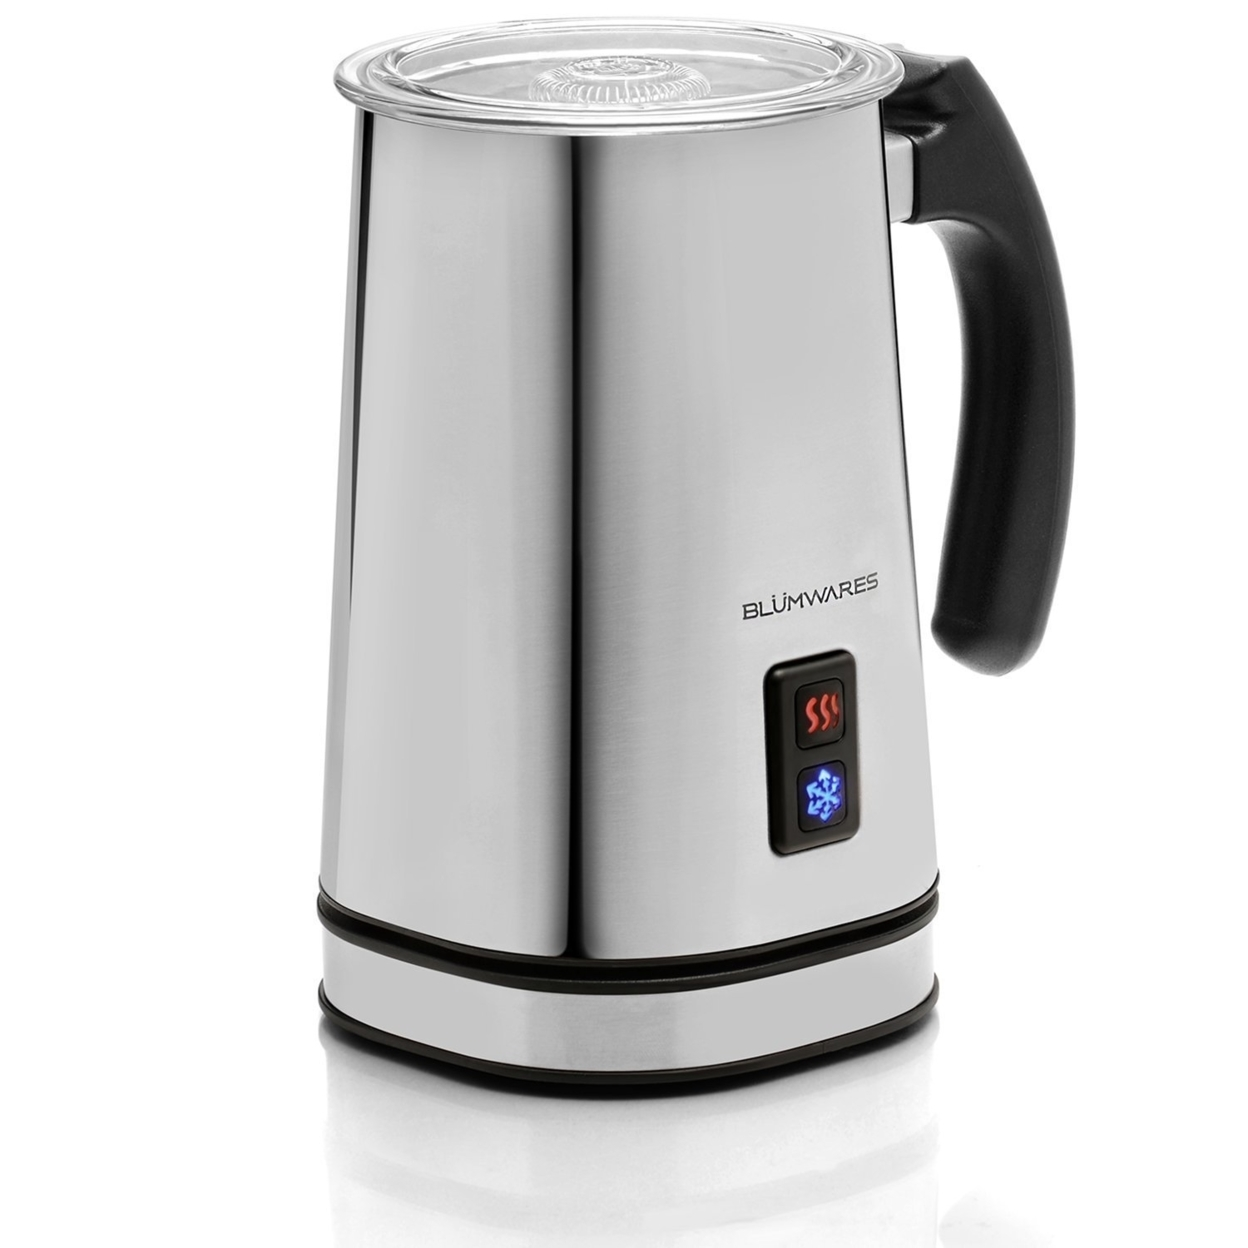 Blumwares Vienne Automatic Milk Frother and Heater   Stainless Electric Carafe   Frother, Warmer, and Cappuccino Maker 59b873102a00e430341cfd17